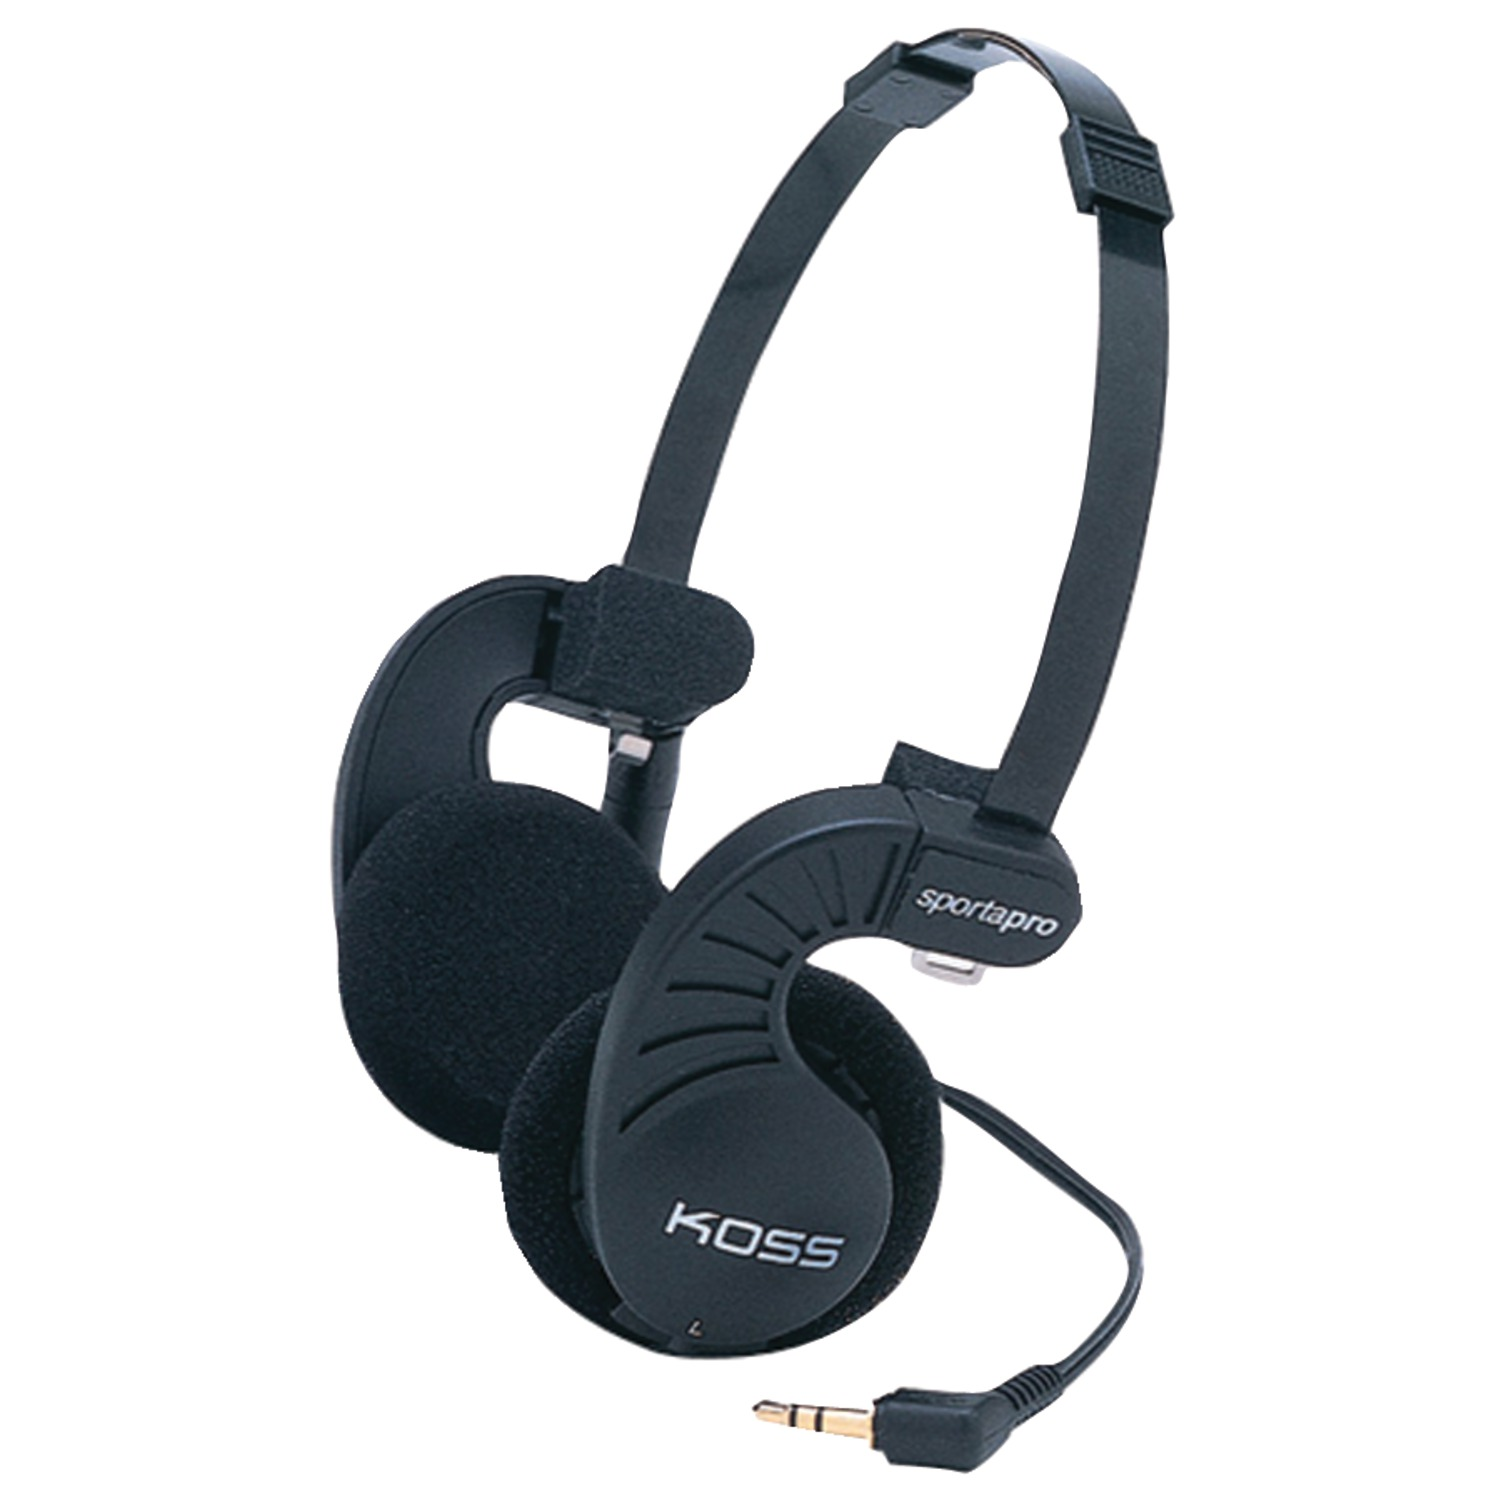 Koss Sporta Pro On-Ear Headphones